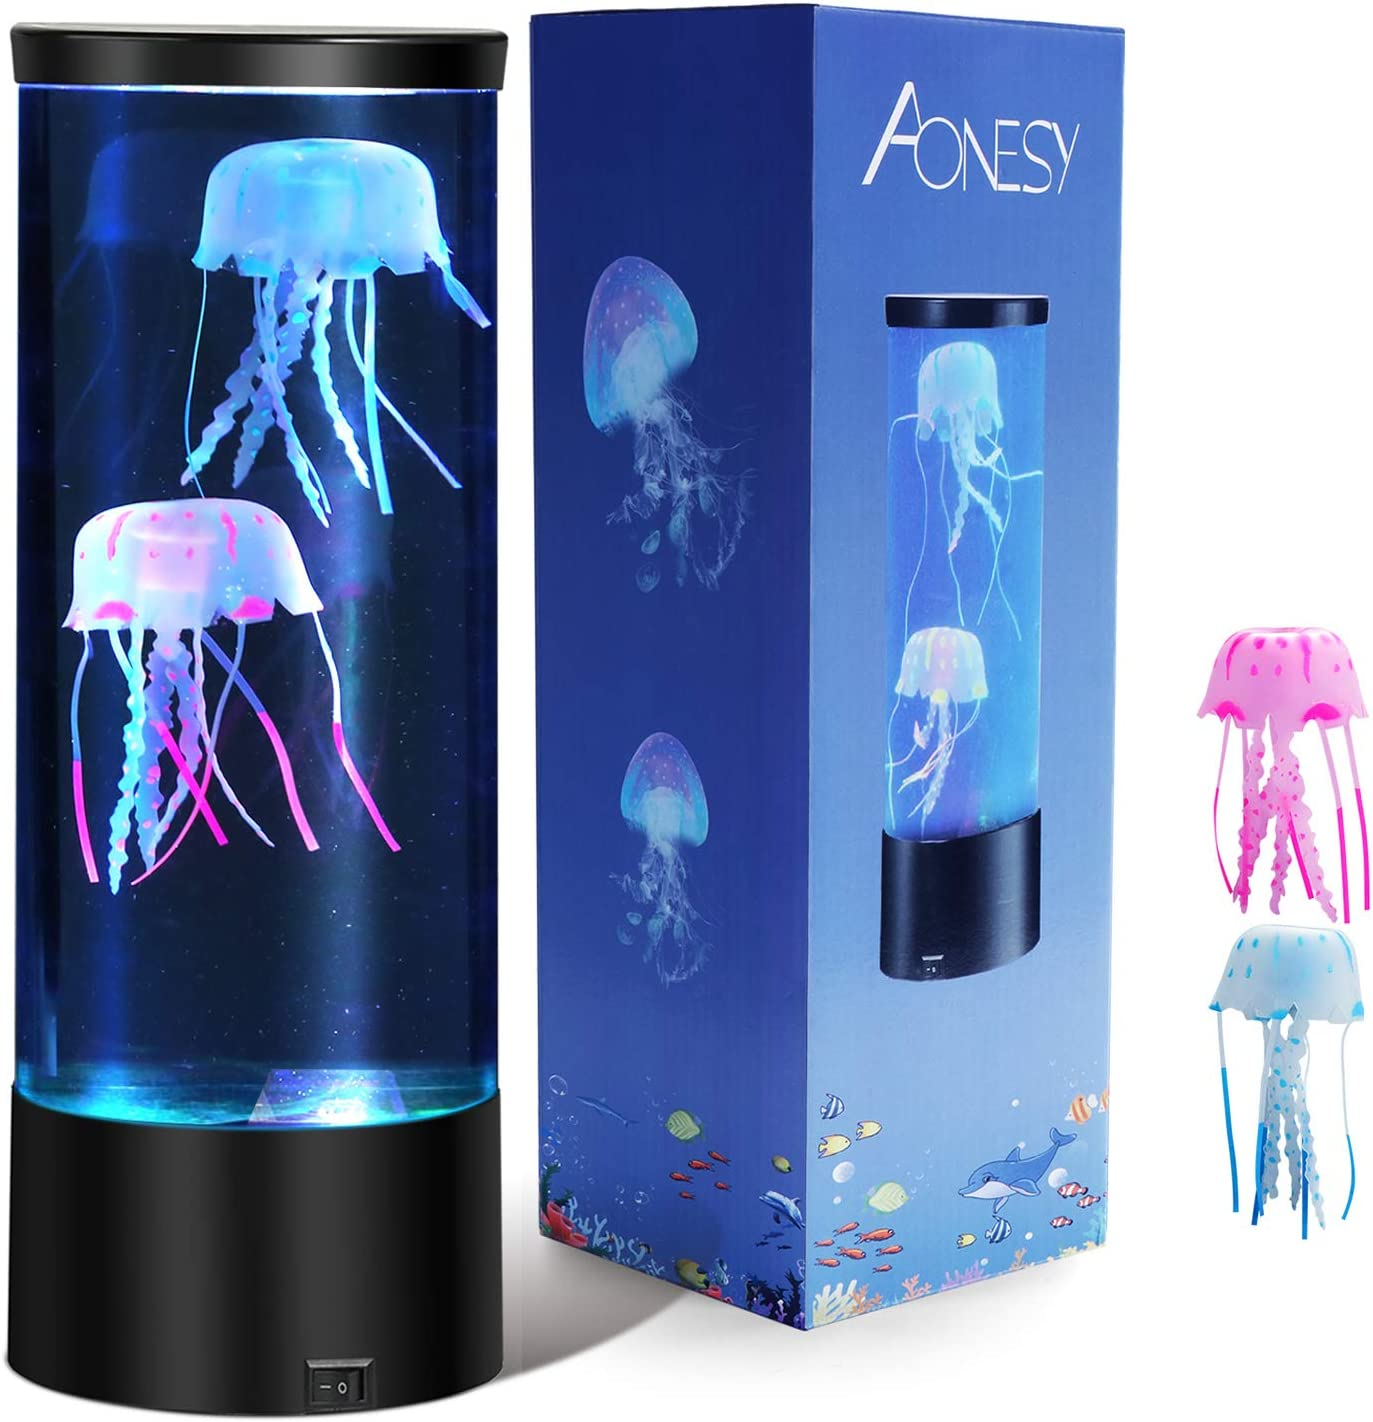 Jellyfish Lamp with Color Changing Lights-Artificial Mini Aquarium Night Light Romantic Gifts for Kids Men Women Dad Mom-Home Office Room Desk Decor Lamp for Christmas Birthday (Grey)